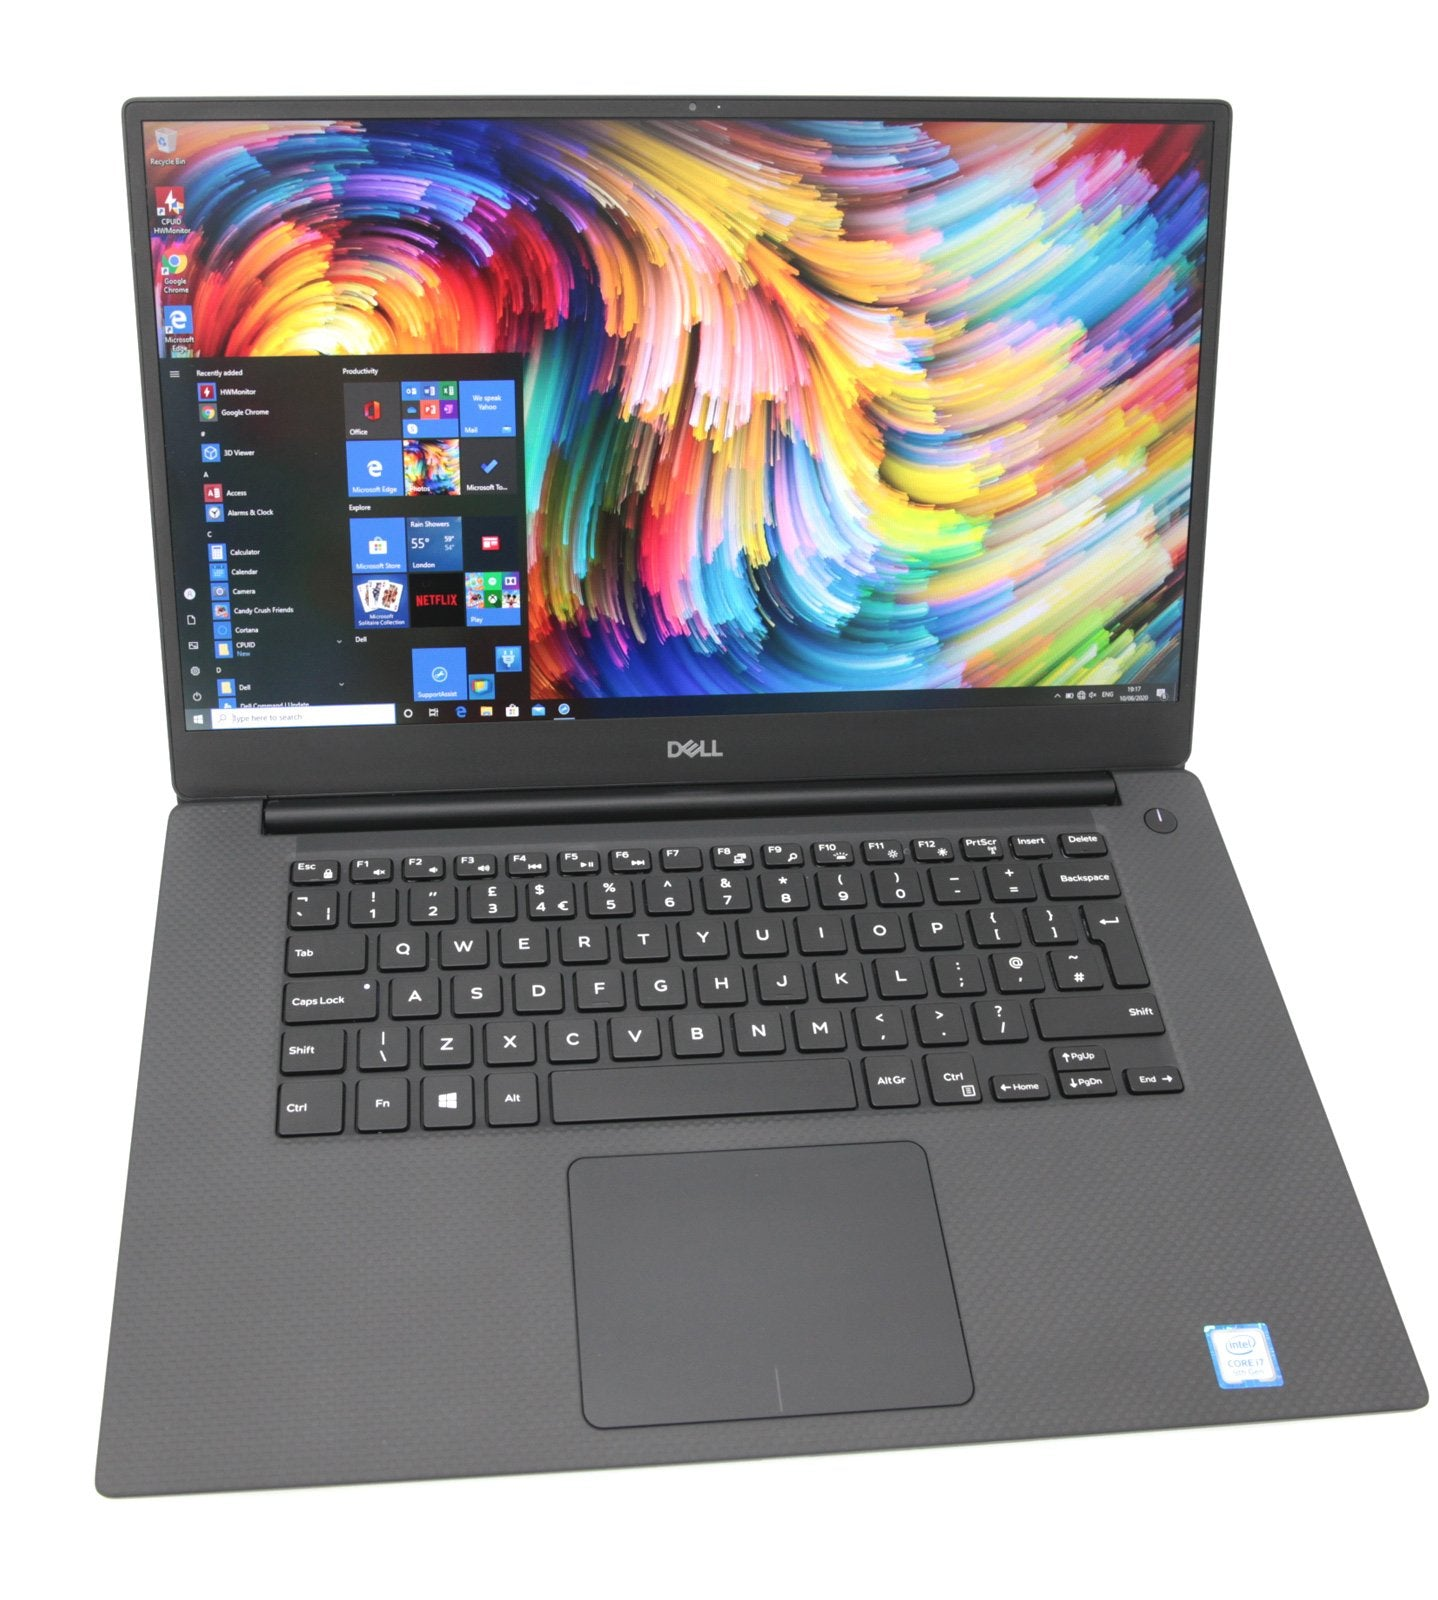 Dell Precision 5540 4K CAD Laptop: Core i7-9850H, 32GB RAM, 1TB SSD, Warranty - CruiseTech